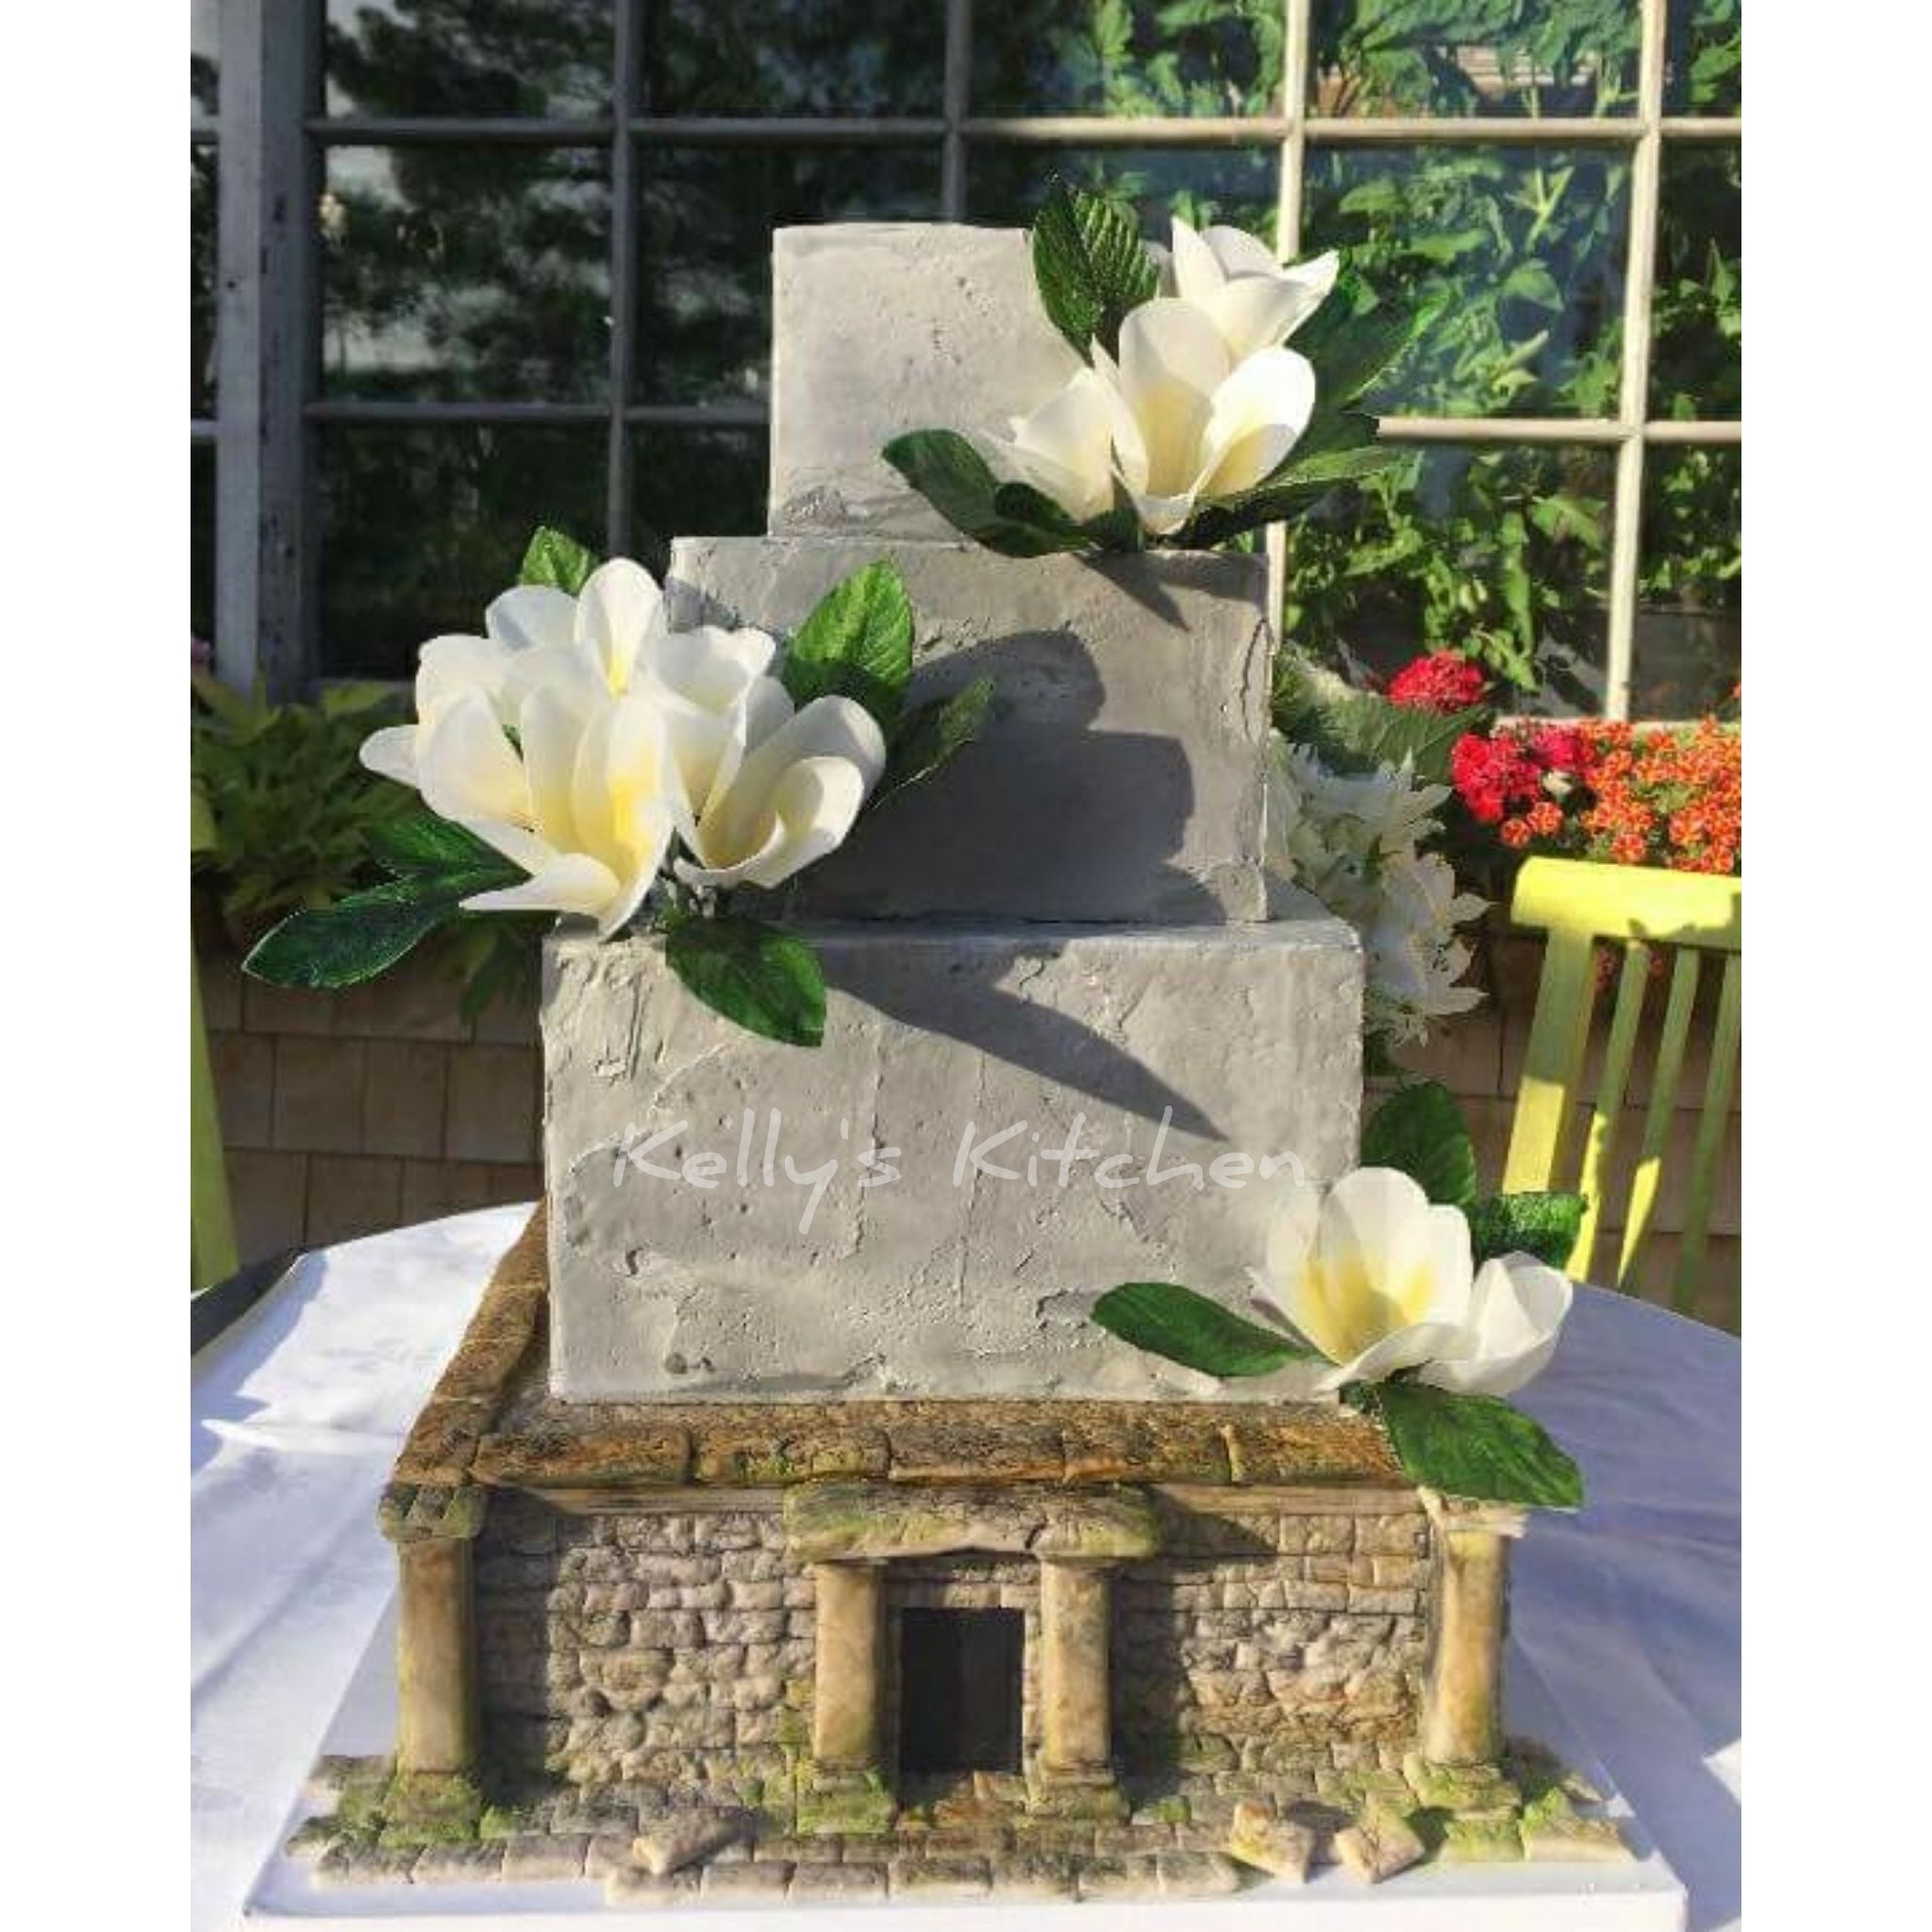 Wedding decorations with mums november 2018 Angkor Wat inspired wedding cake Frangipani flowers and leaves are